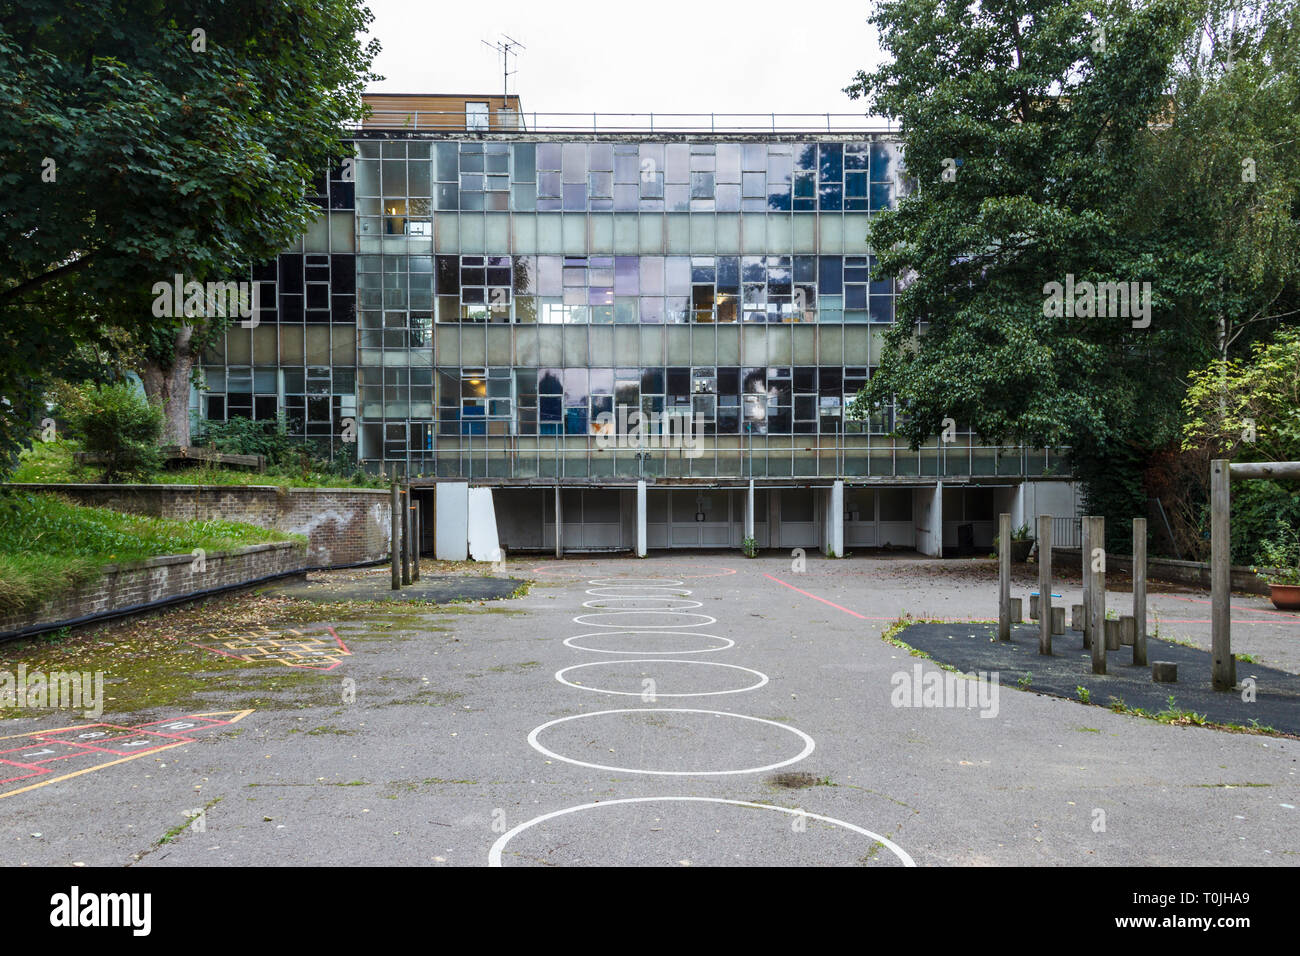 The playground and main building of the empty Ashmount Primary School, before its demolition and rebuilding as Whitehall Park School, North London, UK - Stock Image